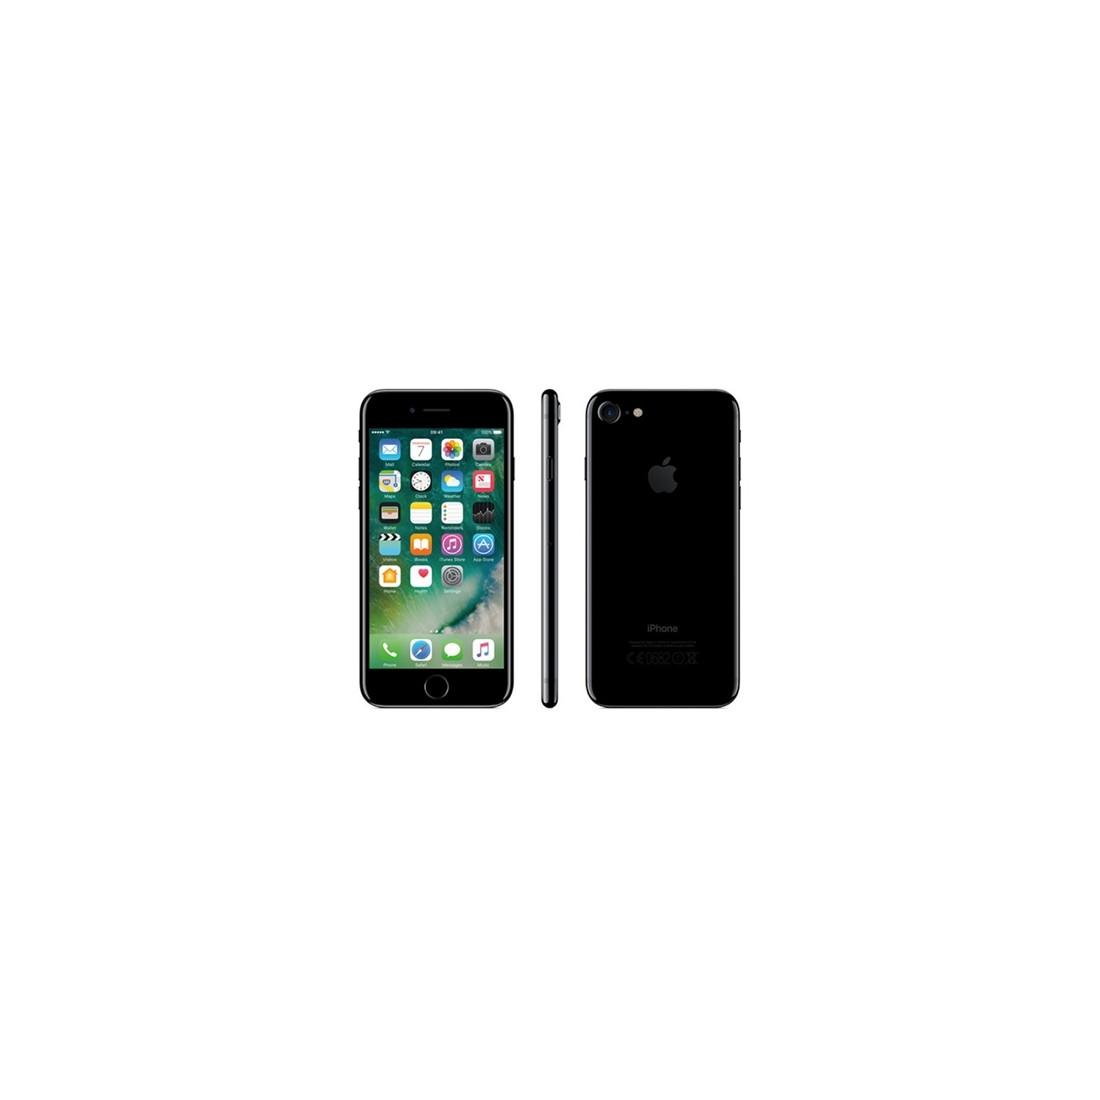 CKP iPhone 7 Semi Nuevo 128GB Negro Mate